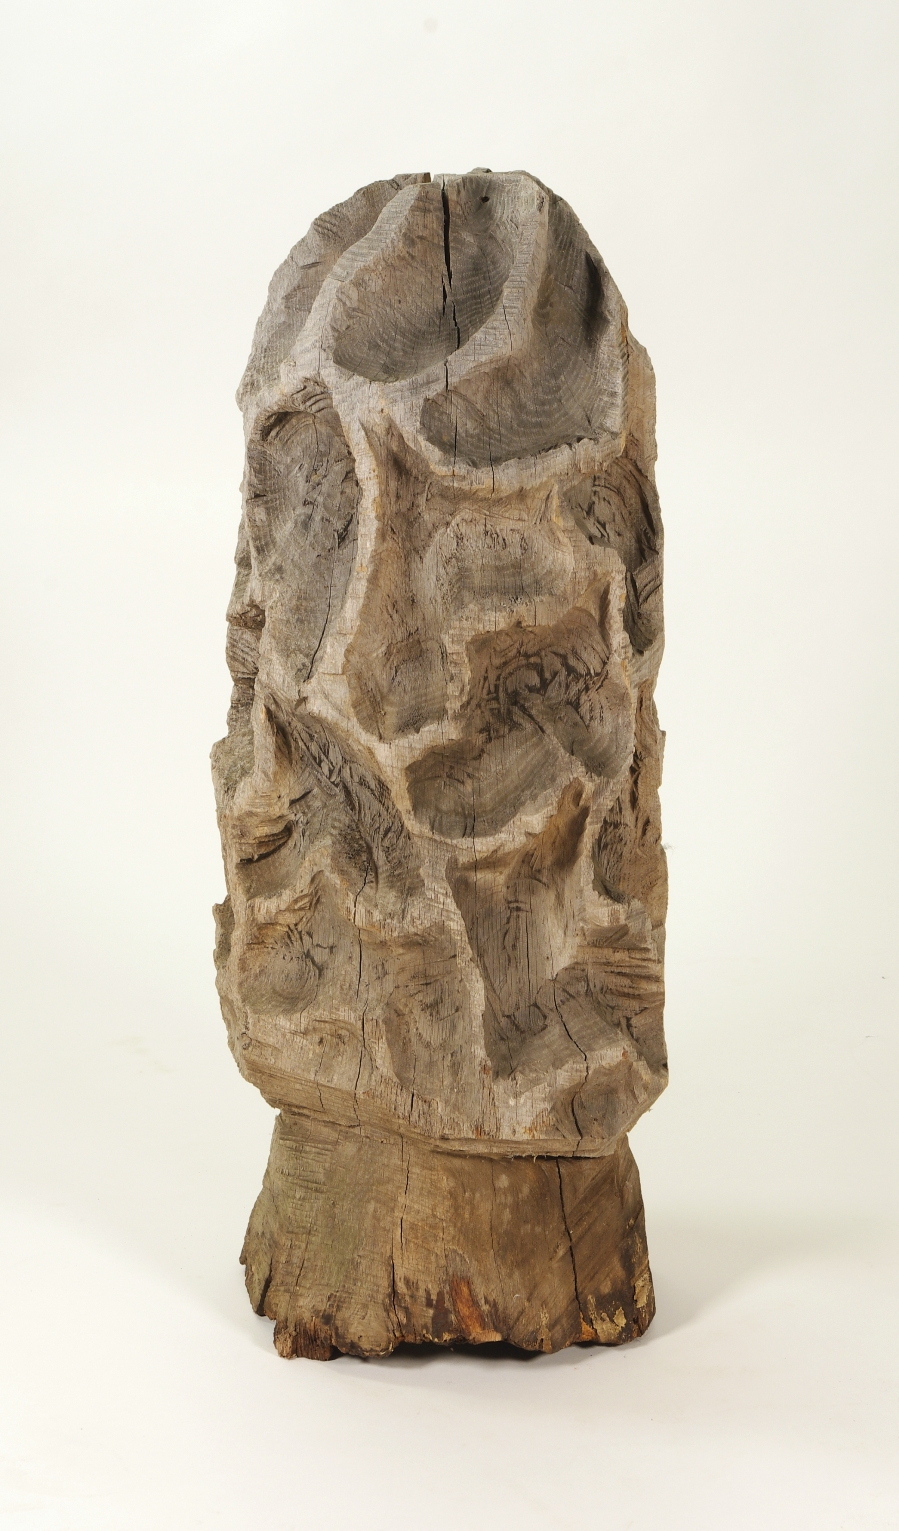 View 2: Folk Art Carved Morel Mushroom Sculpture, Mid 20th c.